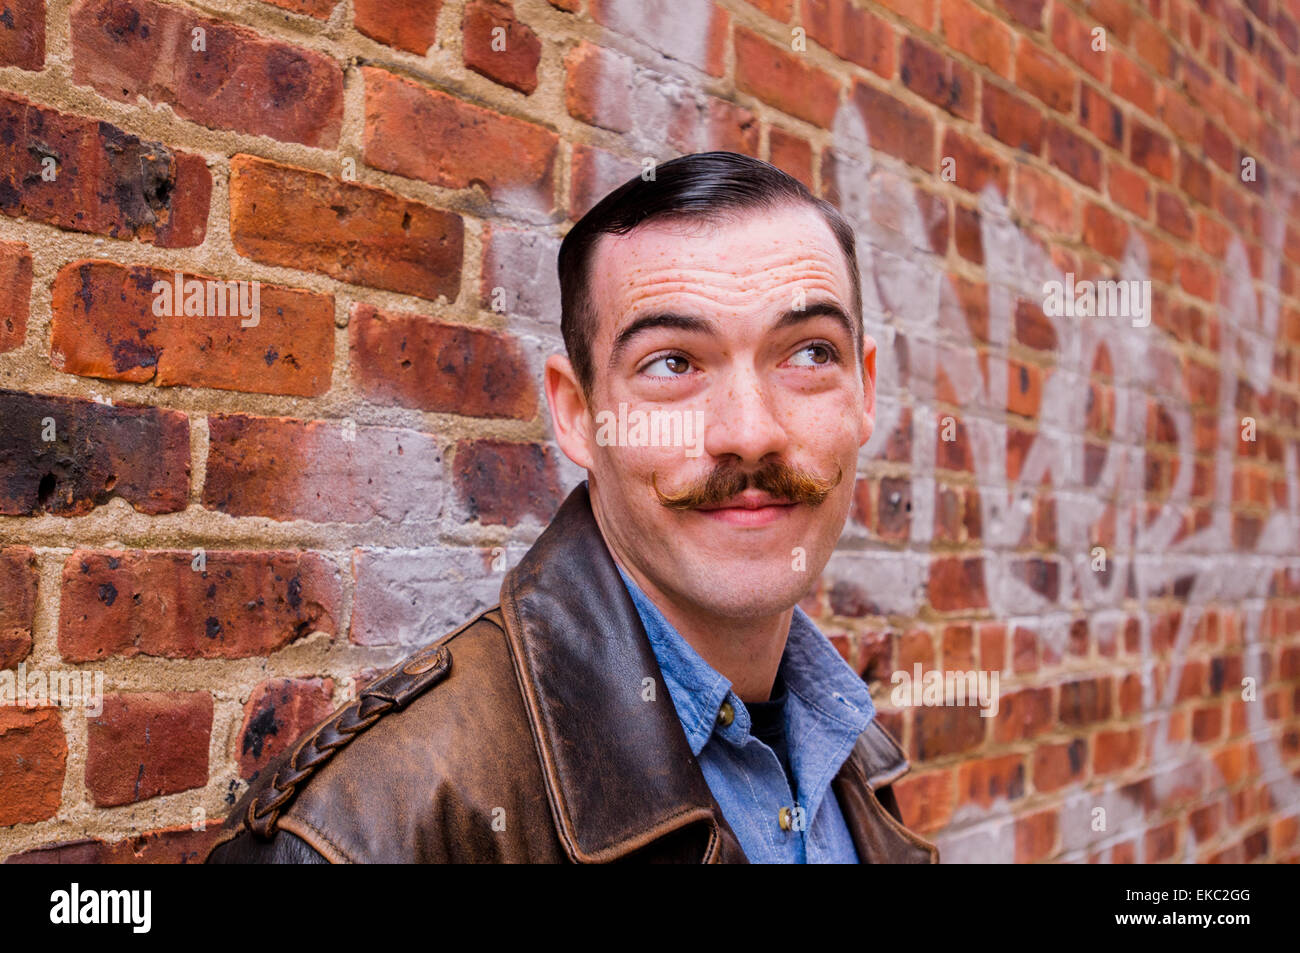 Young man with handlebar moustache, portrait - Stock Image